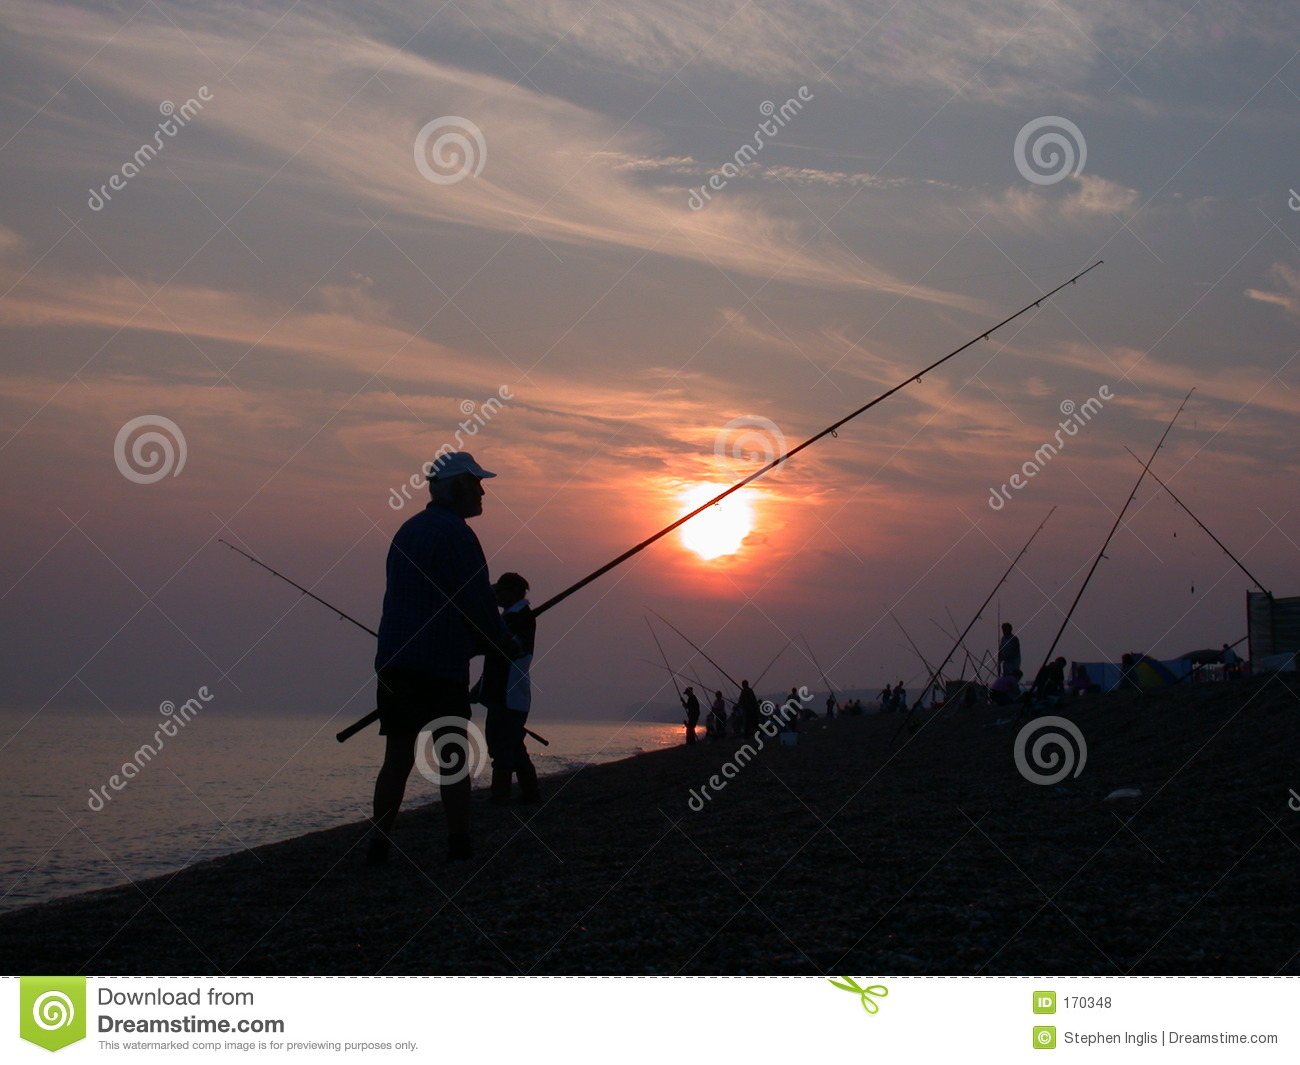 Fishing on the coast